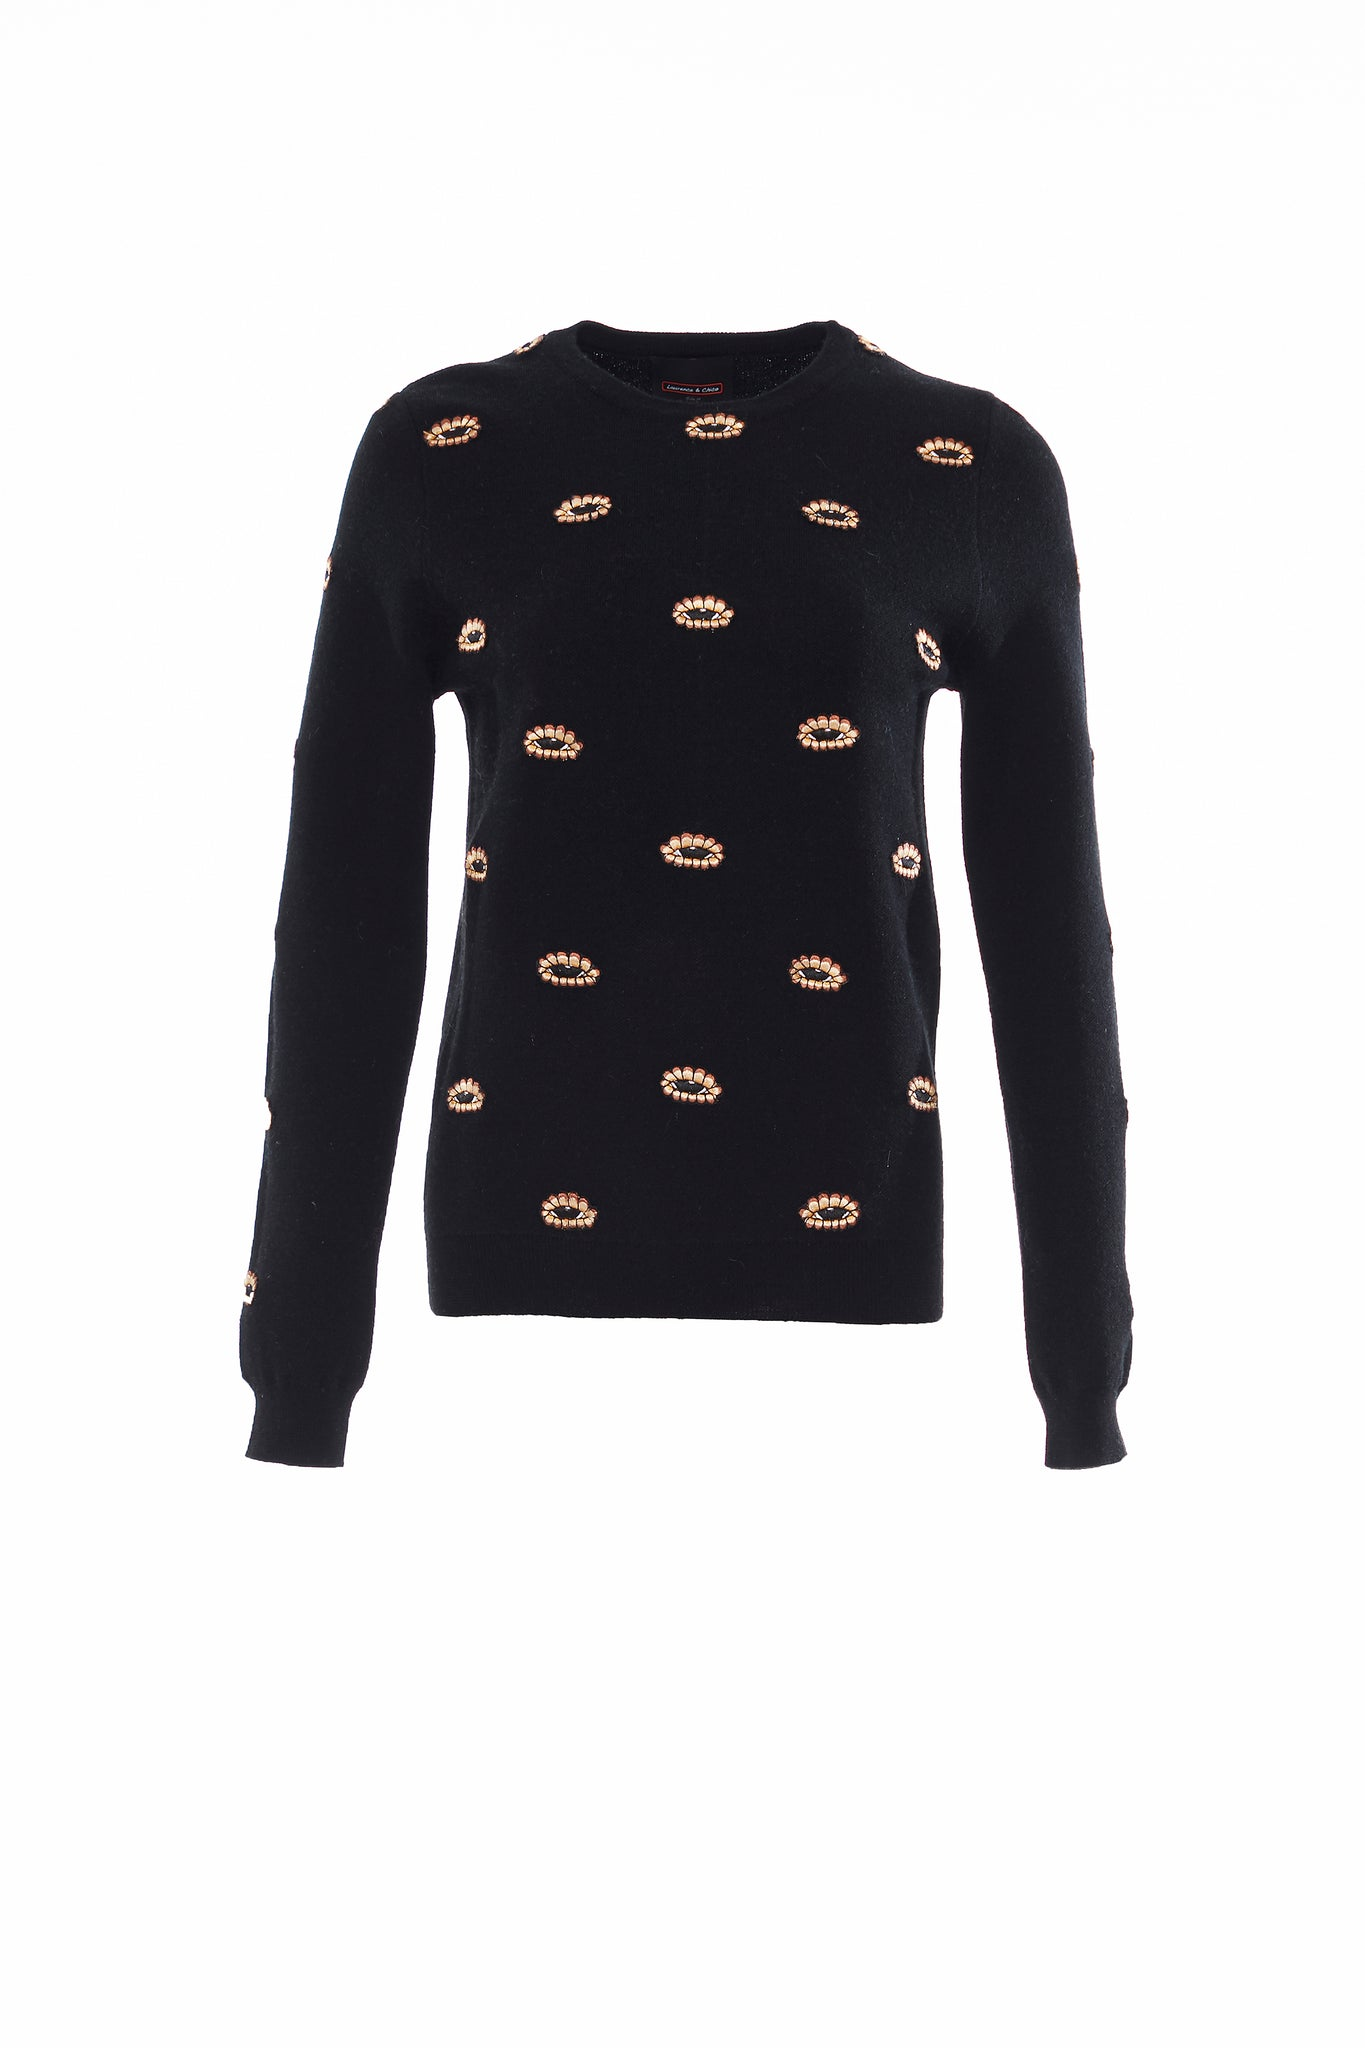 Black Eye embroideries Sweater